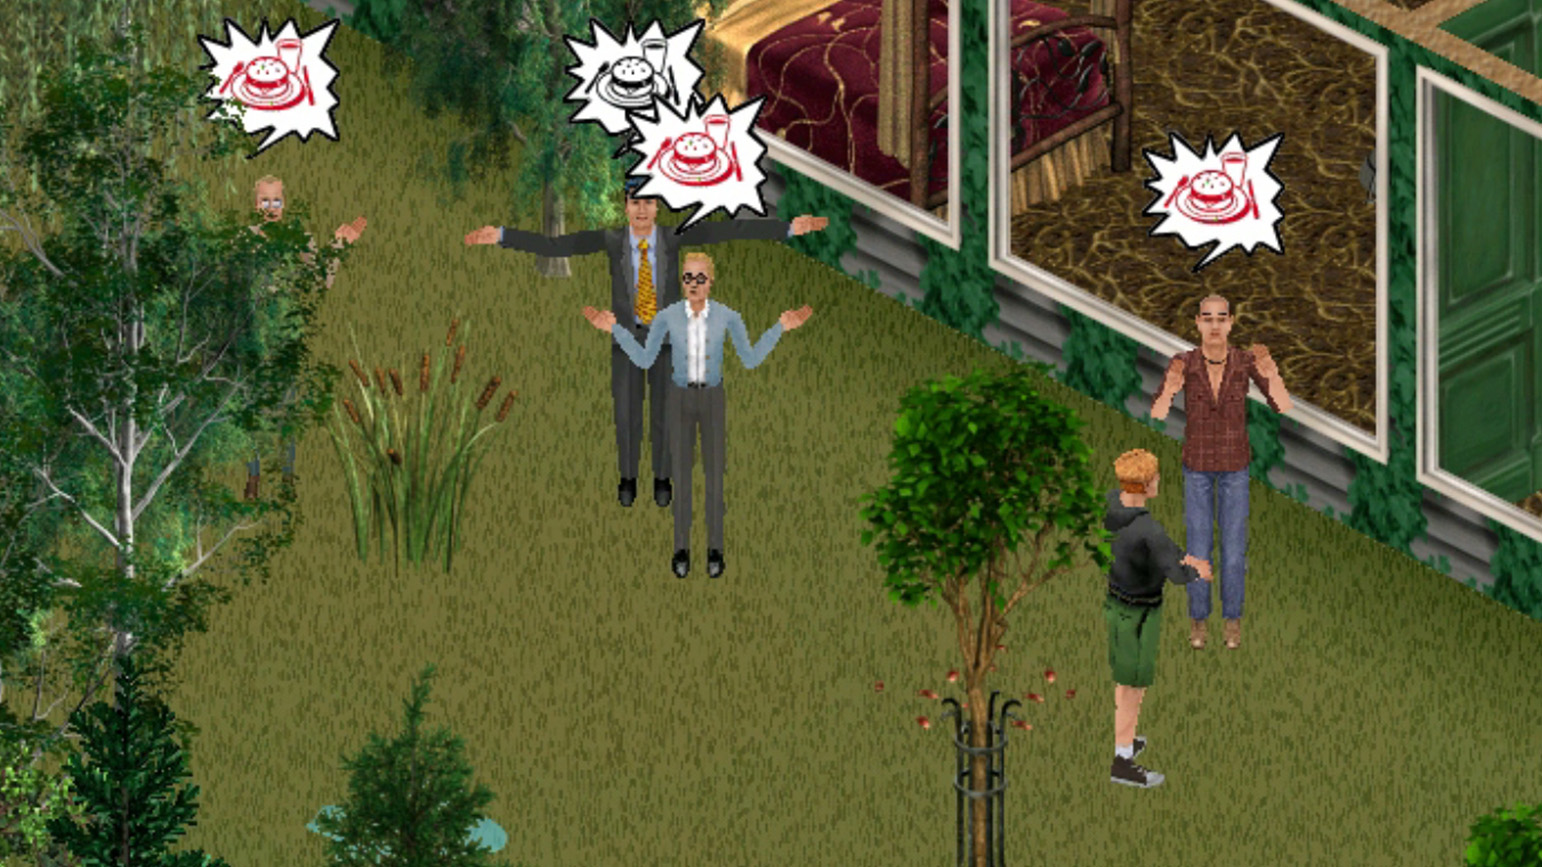 Still from artistic intervention in The Sims, showing several characters with speech balloons with burgers